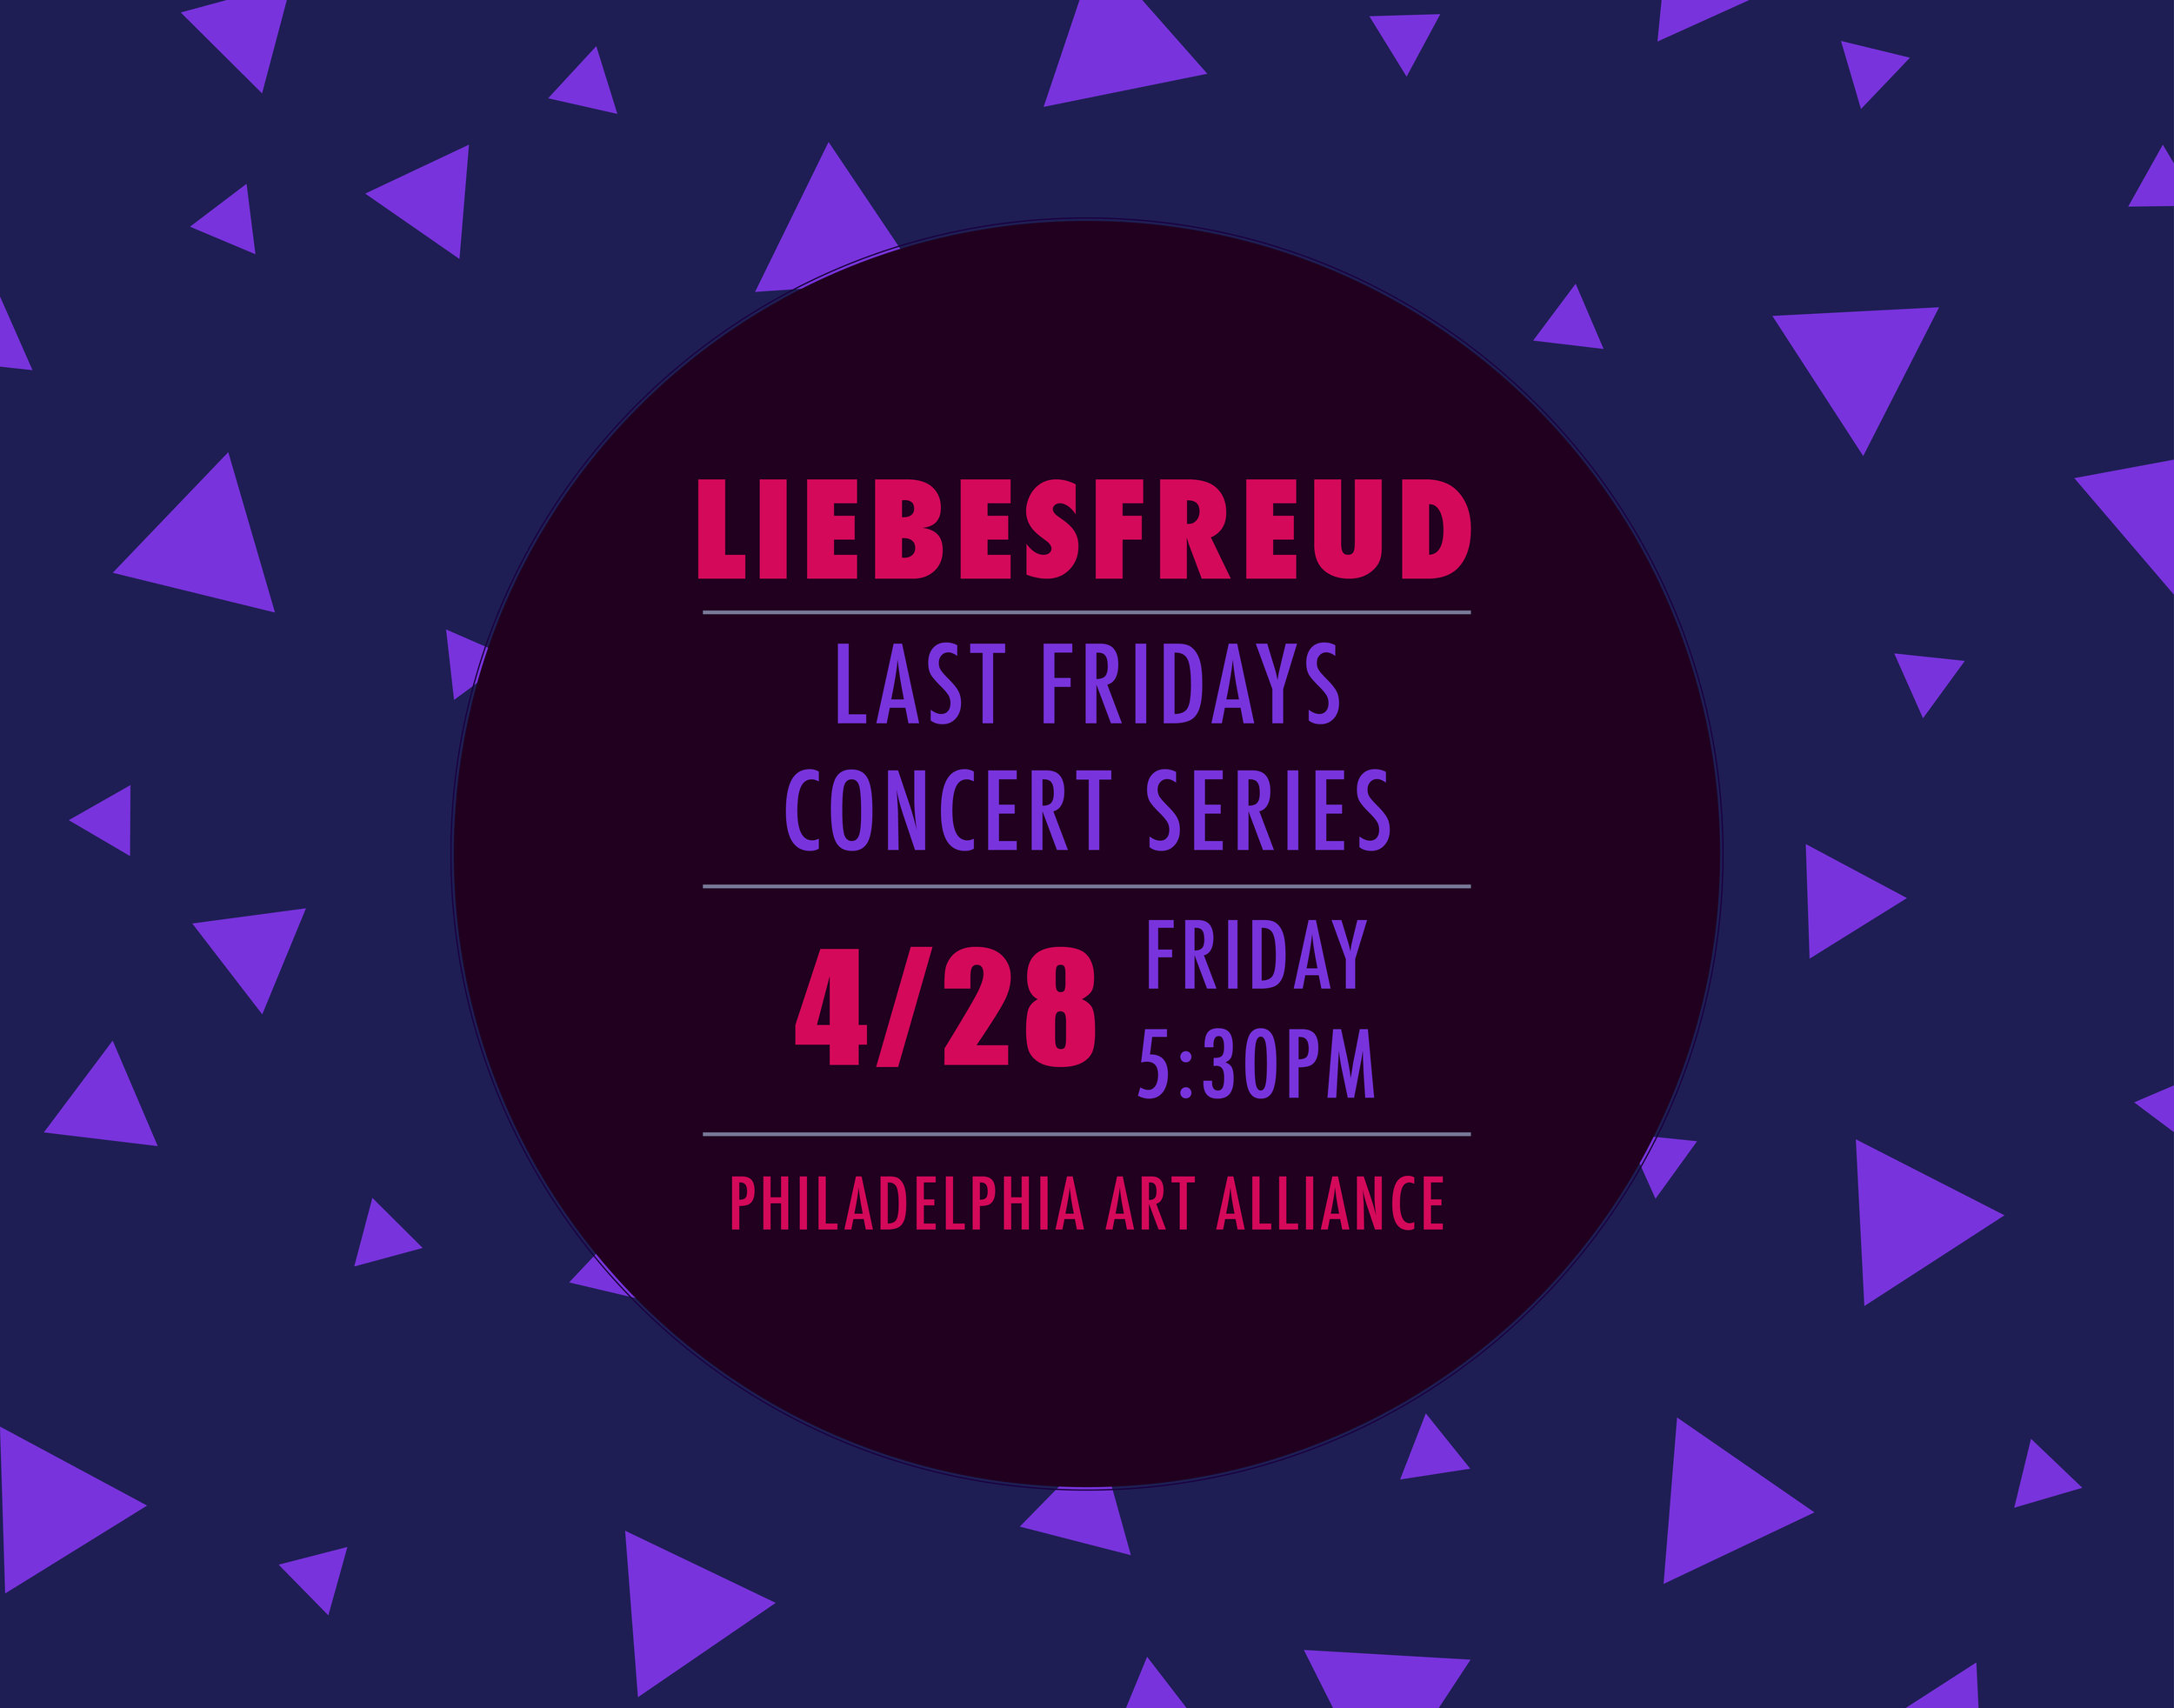 Liebesfreud-April-Poster-triangles.jpg